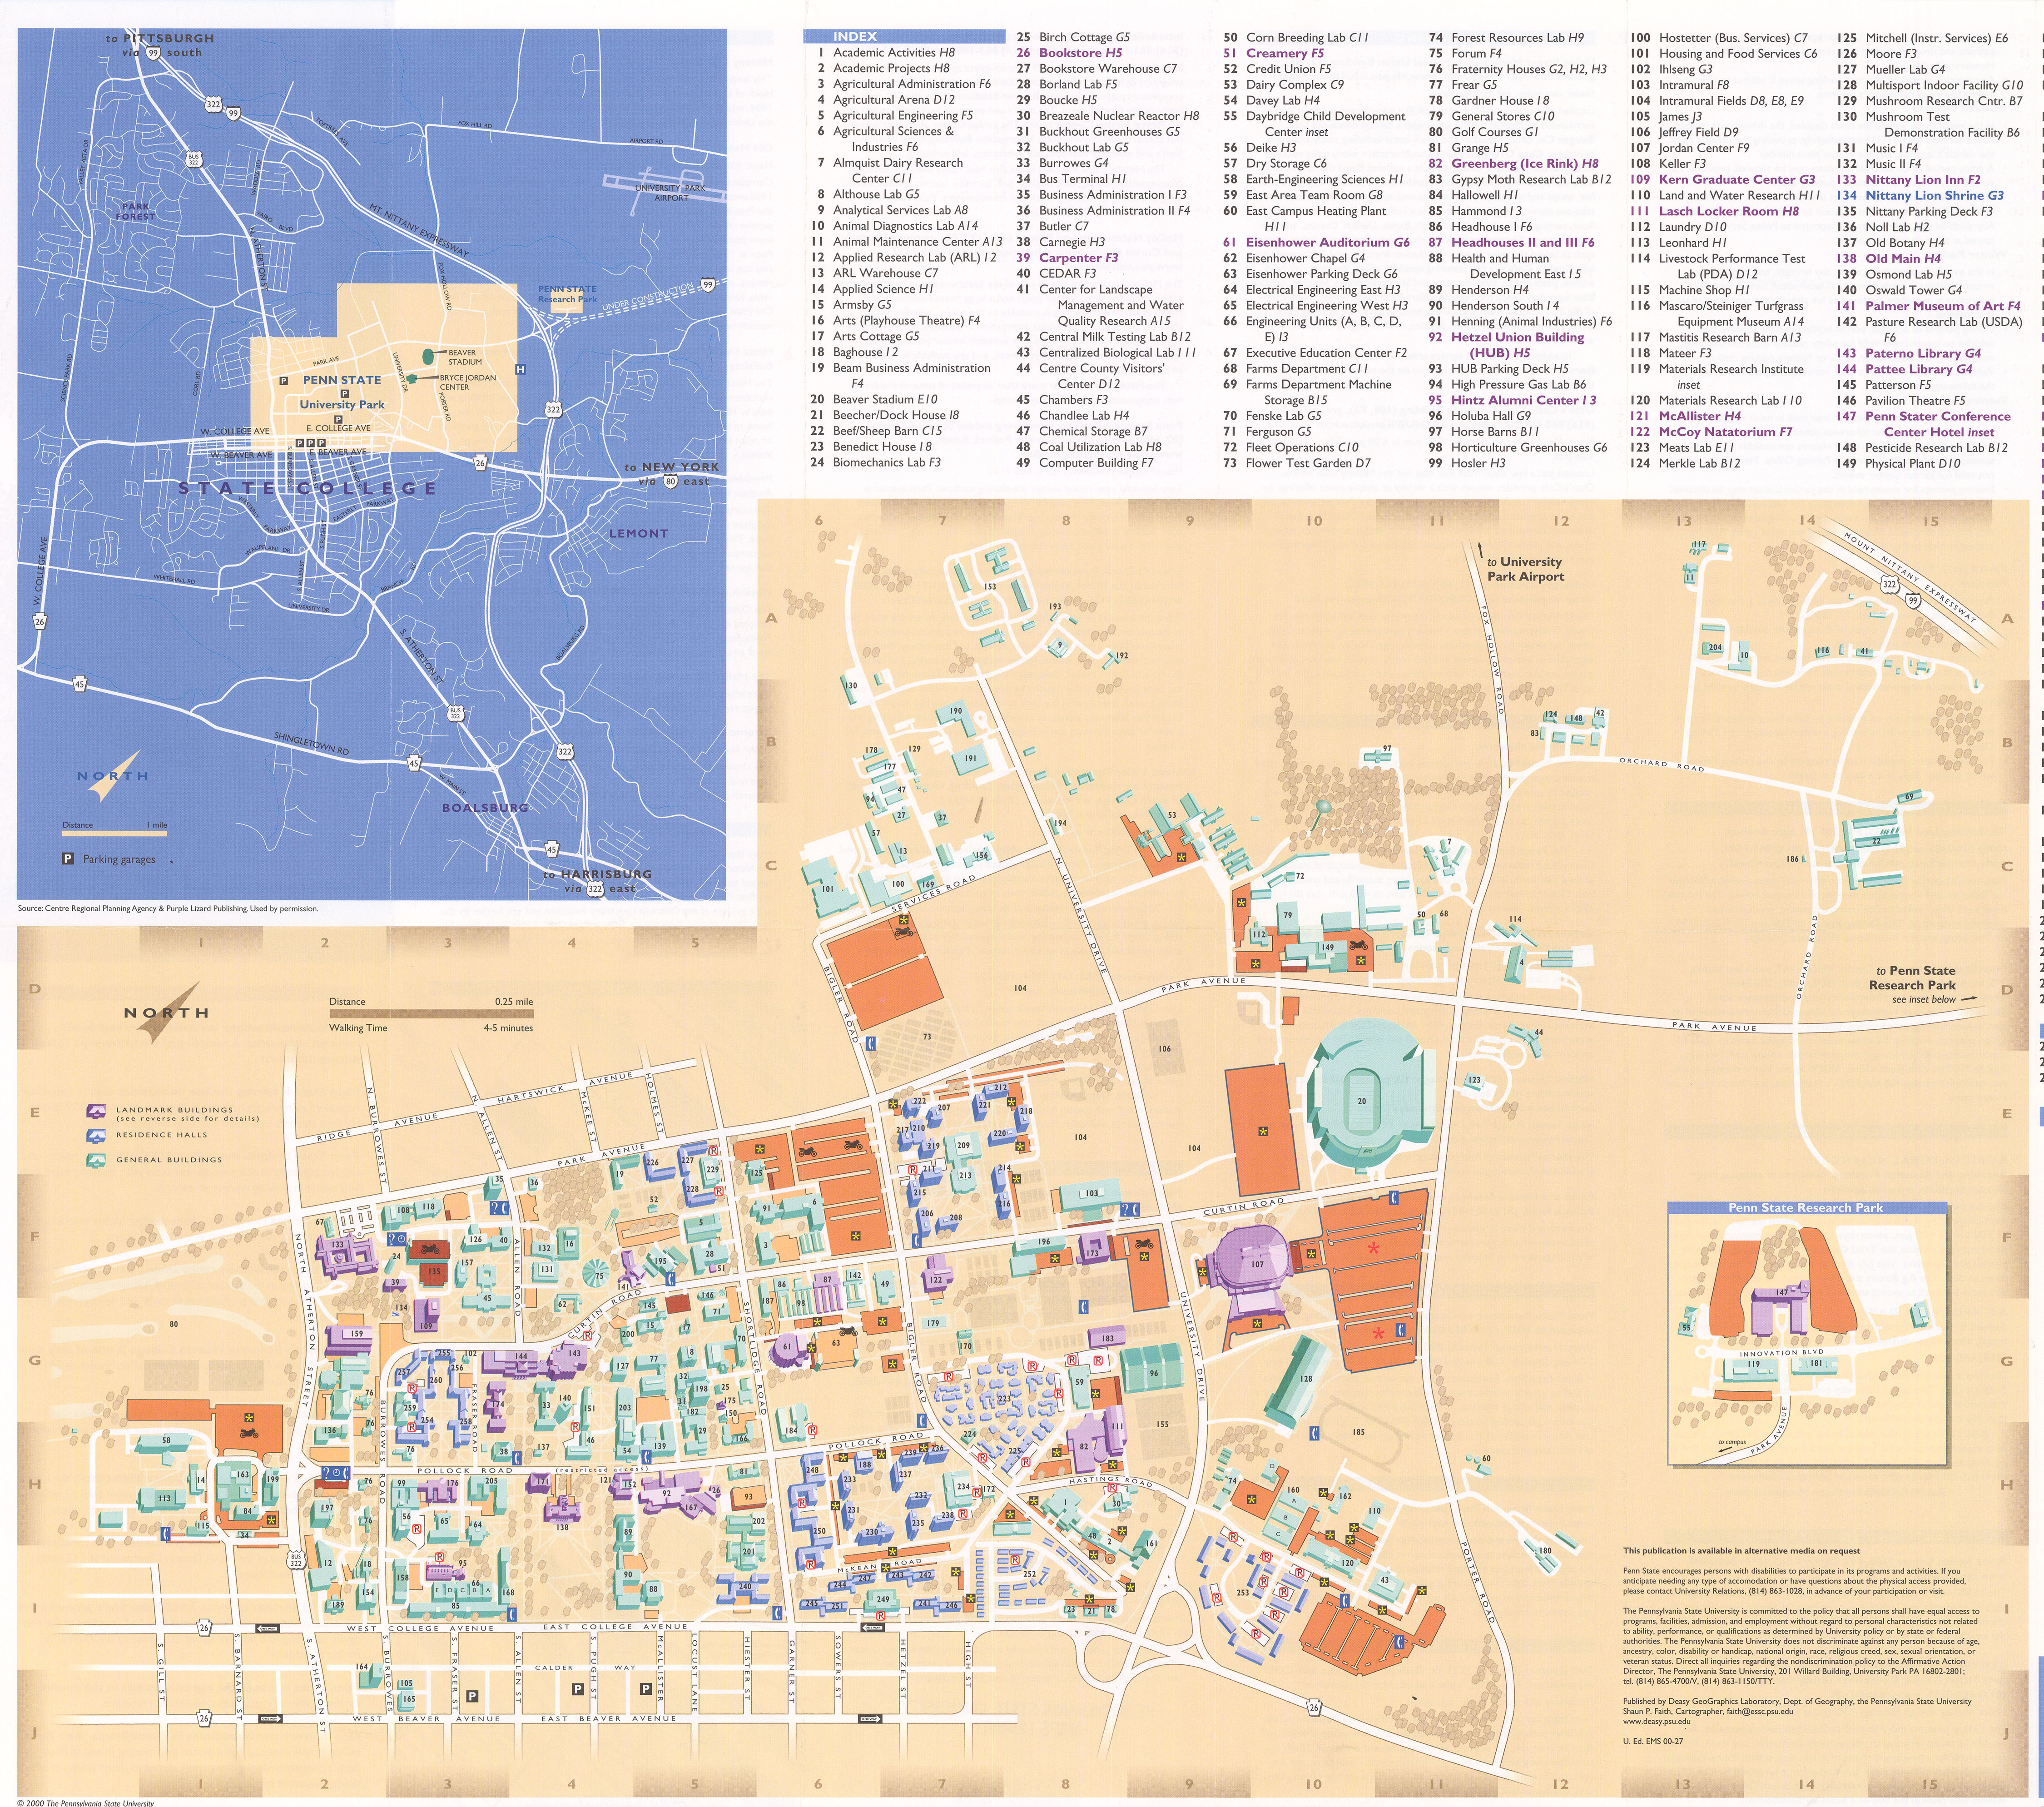 1980 PSU UP campus map